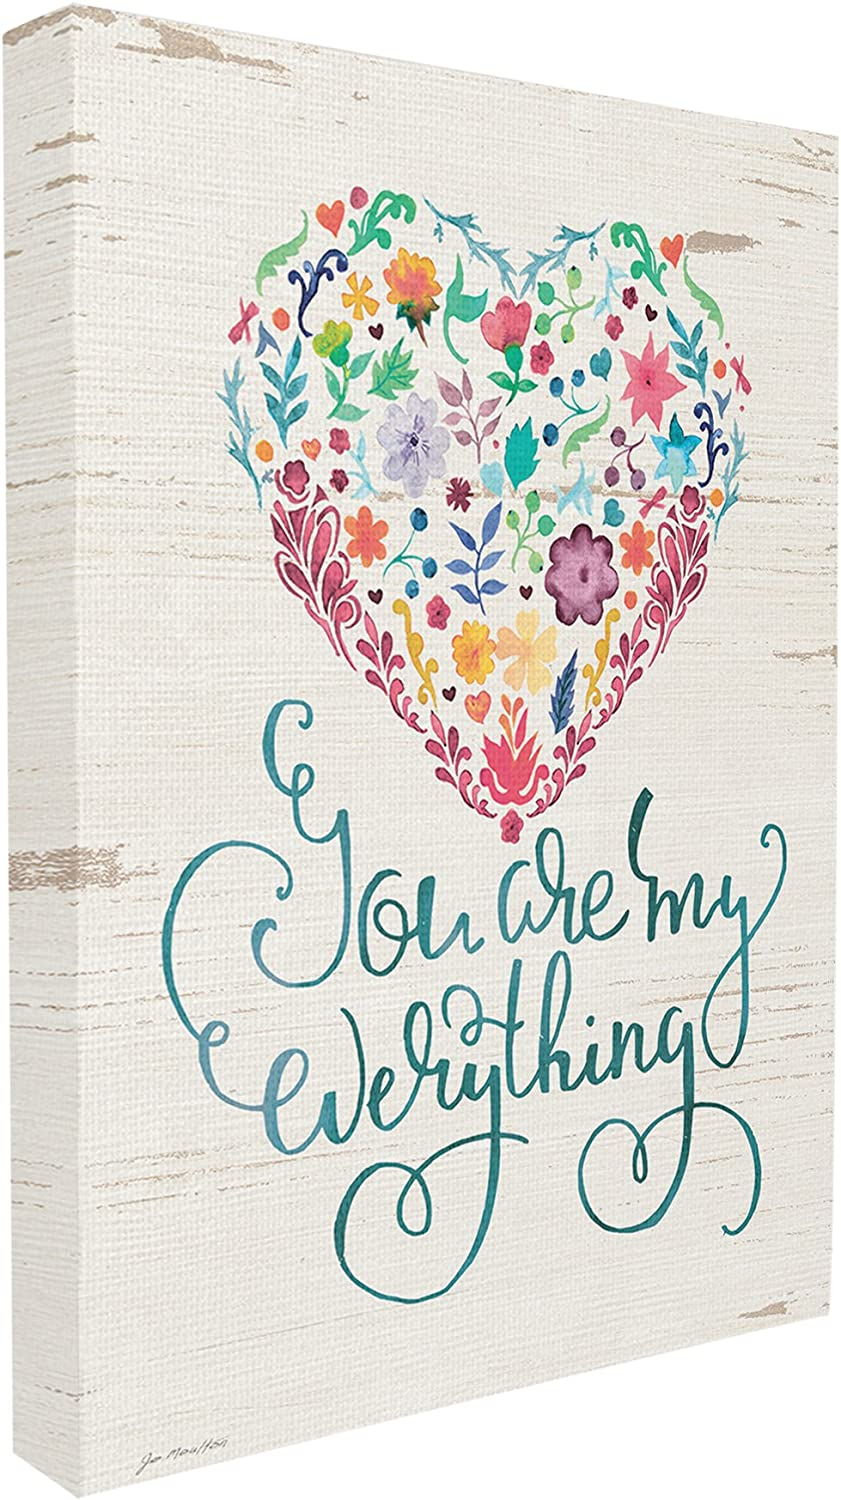 The Stupell Home Decor Collection You are My Everything Floral Heart Stretched Canvas Wall Art, 30 x 40, Multicolor